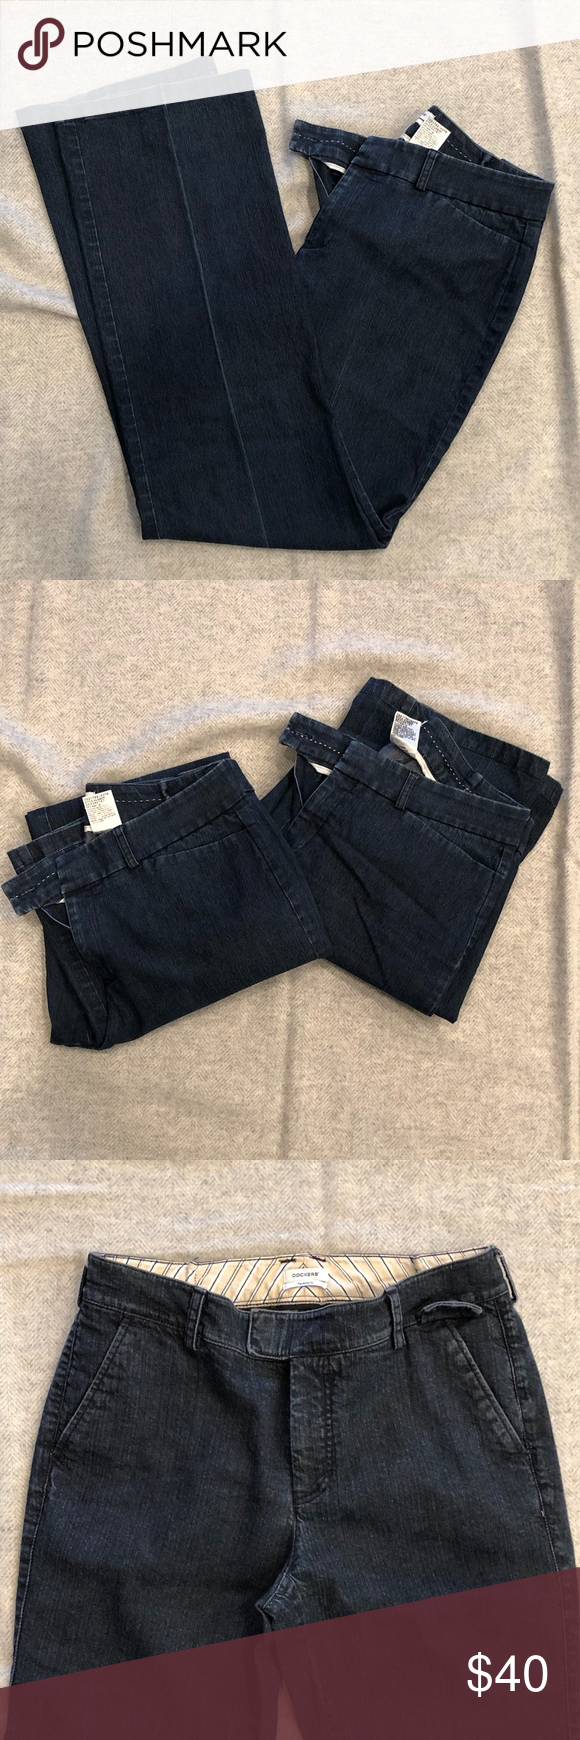 TWO PAIRS Dockers Jeans Bundle of TWO